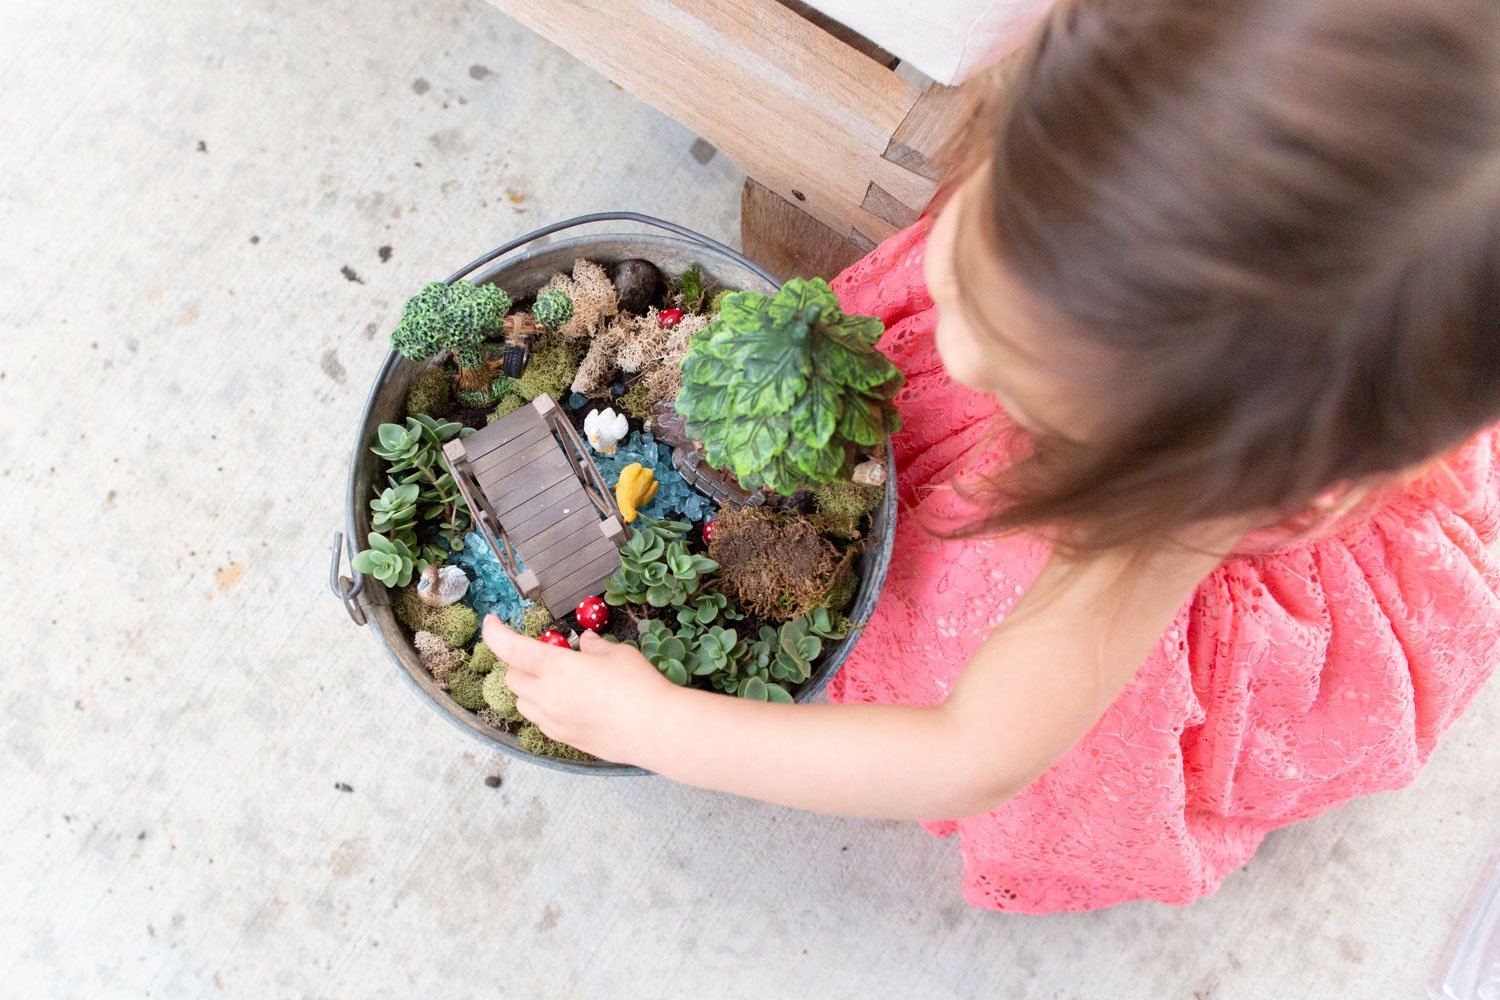 How to Make an Outdoor Fairy Garden in a Bucket - SIMPLE Tutorial